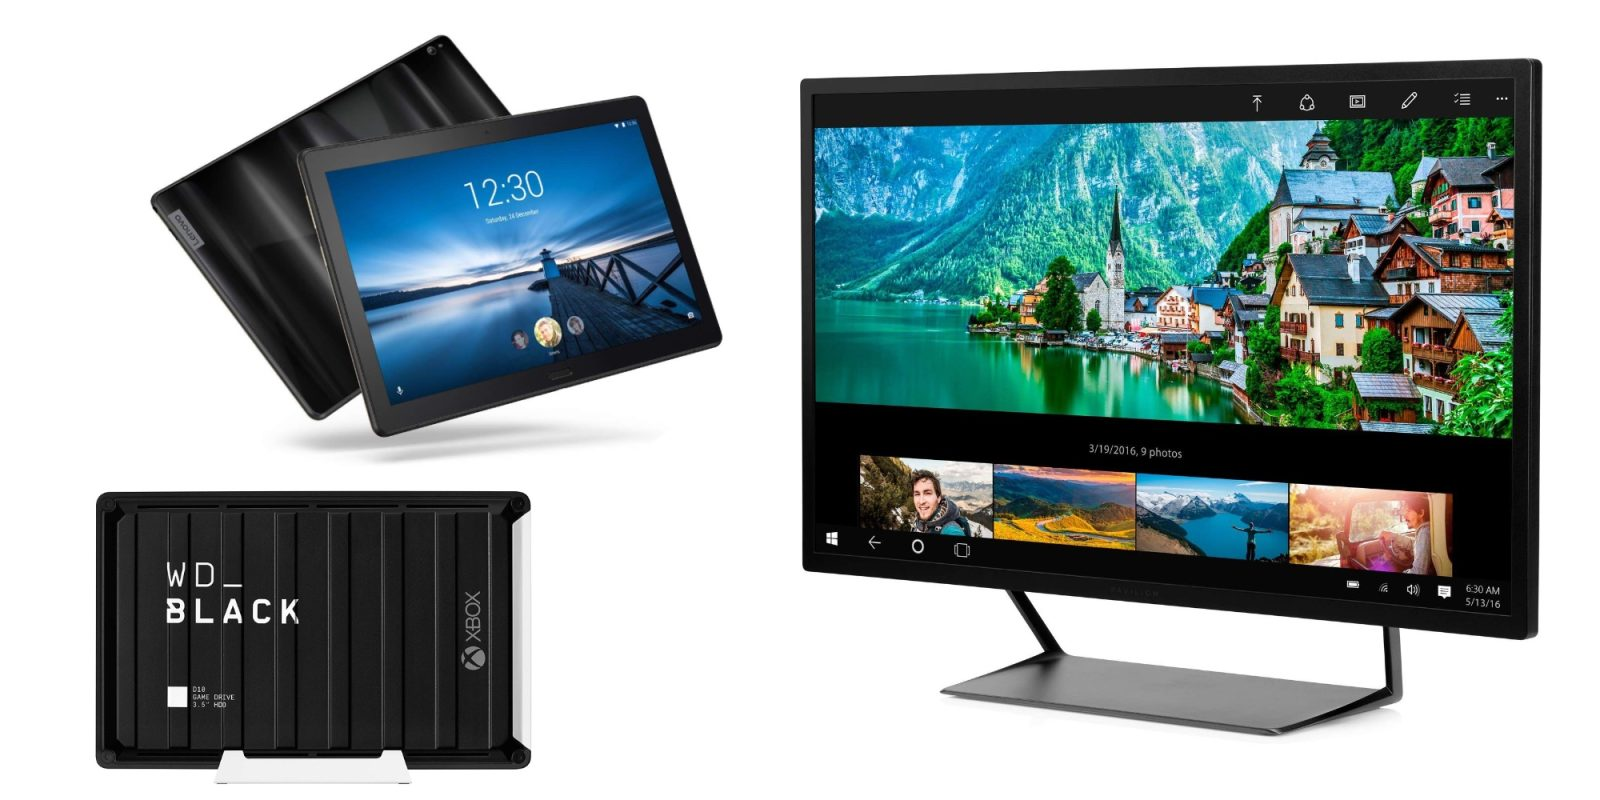 Save up to 45% on monitors, tablets, and more in today's Gold Box from $51